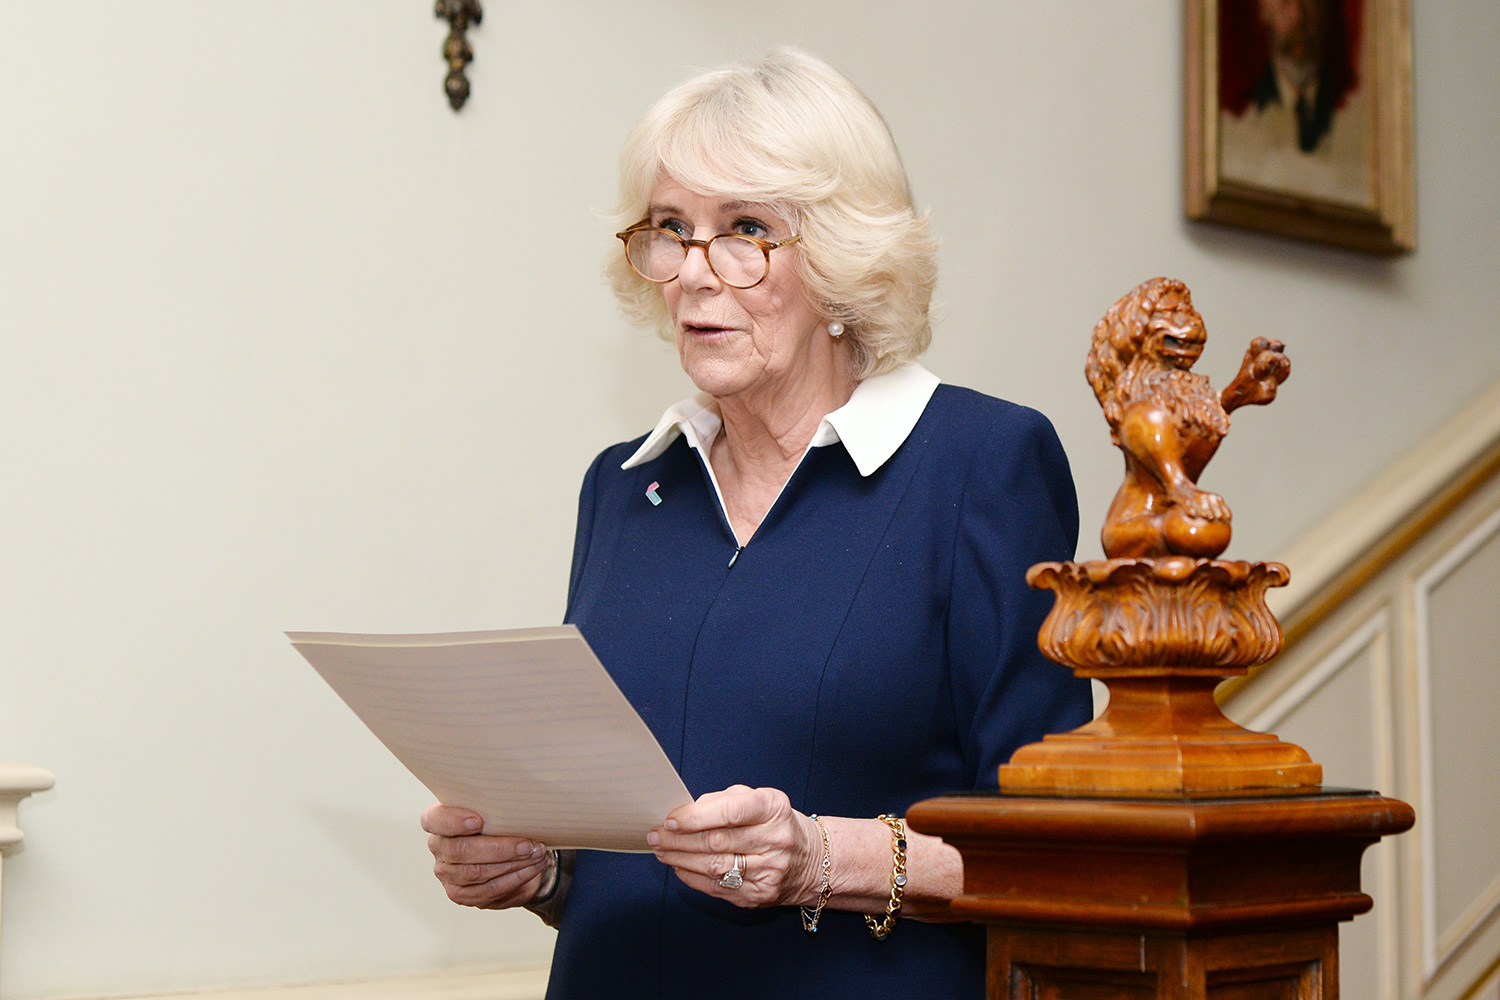 Camilla, Duchess of Cornwall speaks during a reception to acknowledge the 15th anniversary of domestic abuse charity SafeLives at Clarence House on February 12, 2020 in London, England